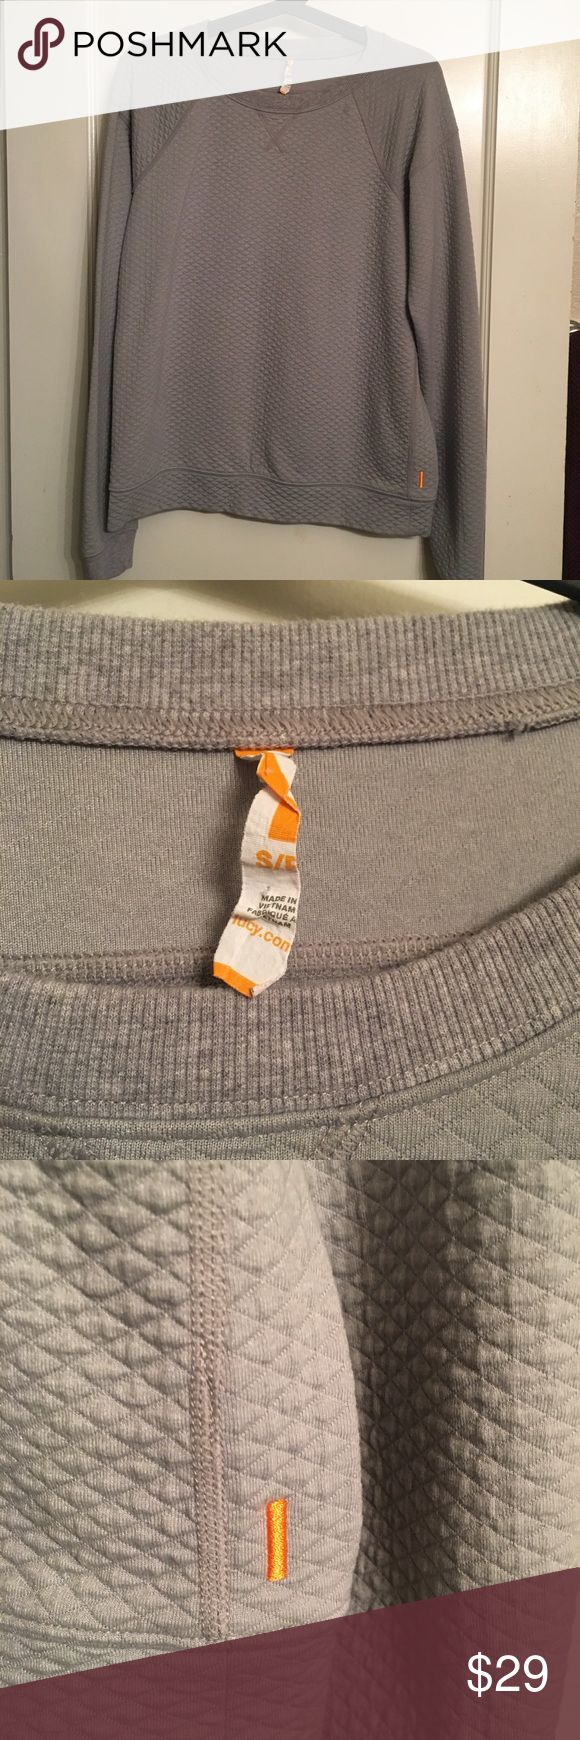 Lucy quilted sweatshirt is gray - size small. Great condition, no flaws. Size small lucy athletic / casual sweatshirt. Be sure to check out the rest of my closet for other name brand items at the best prices. Bundles of two or more items are 15% off. 7.10.10.31.85.7 Lucy Tops Sweatshirts & Hoodies